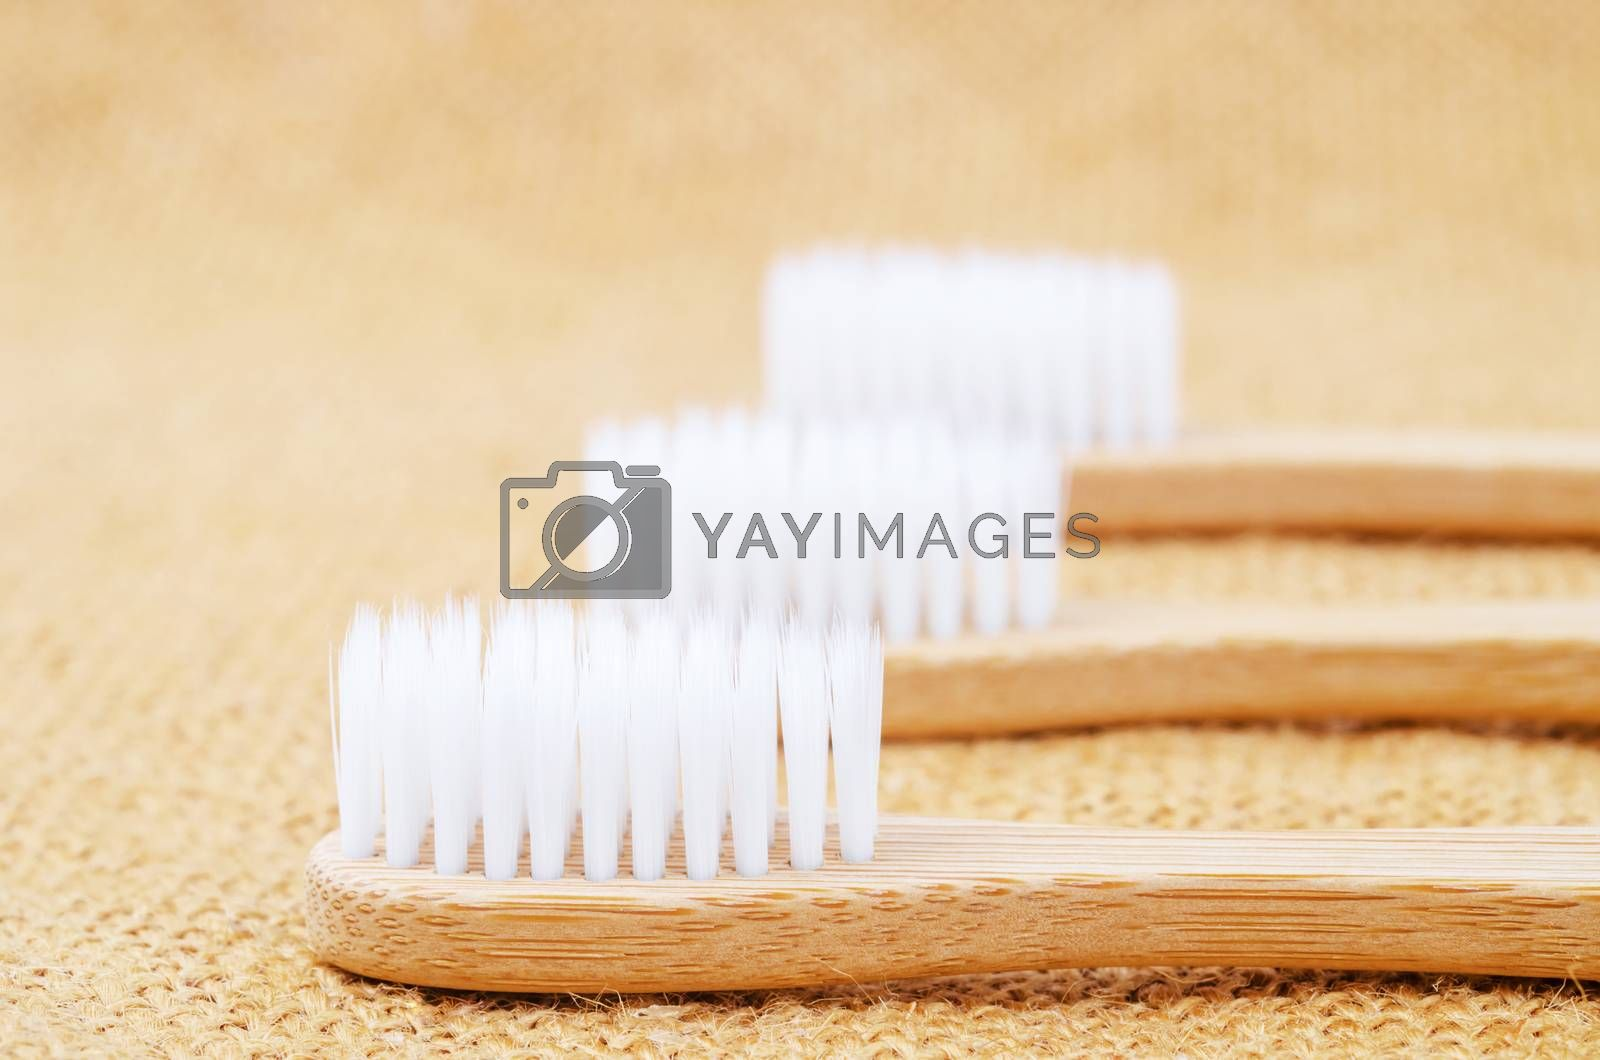 Bamboo toothbrushes on sack backgroud.